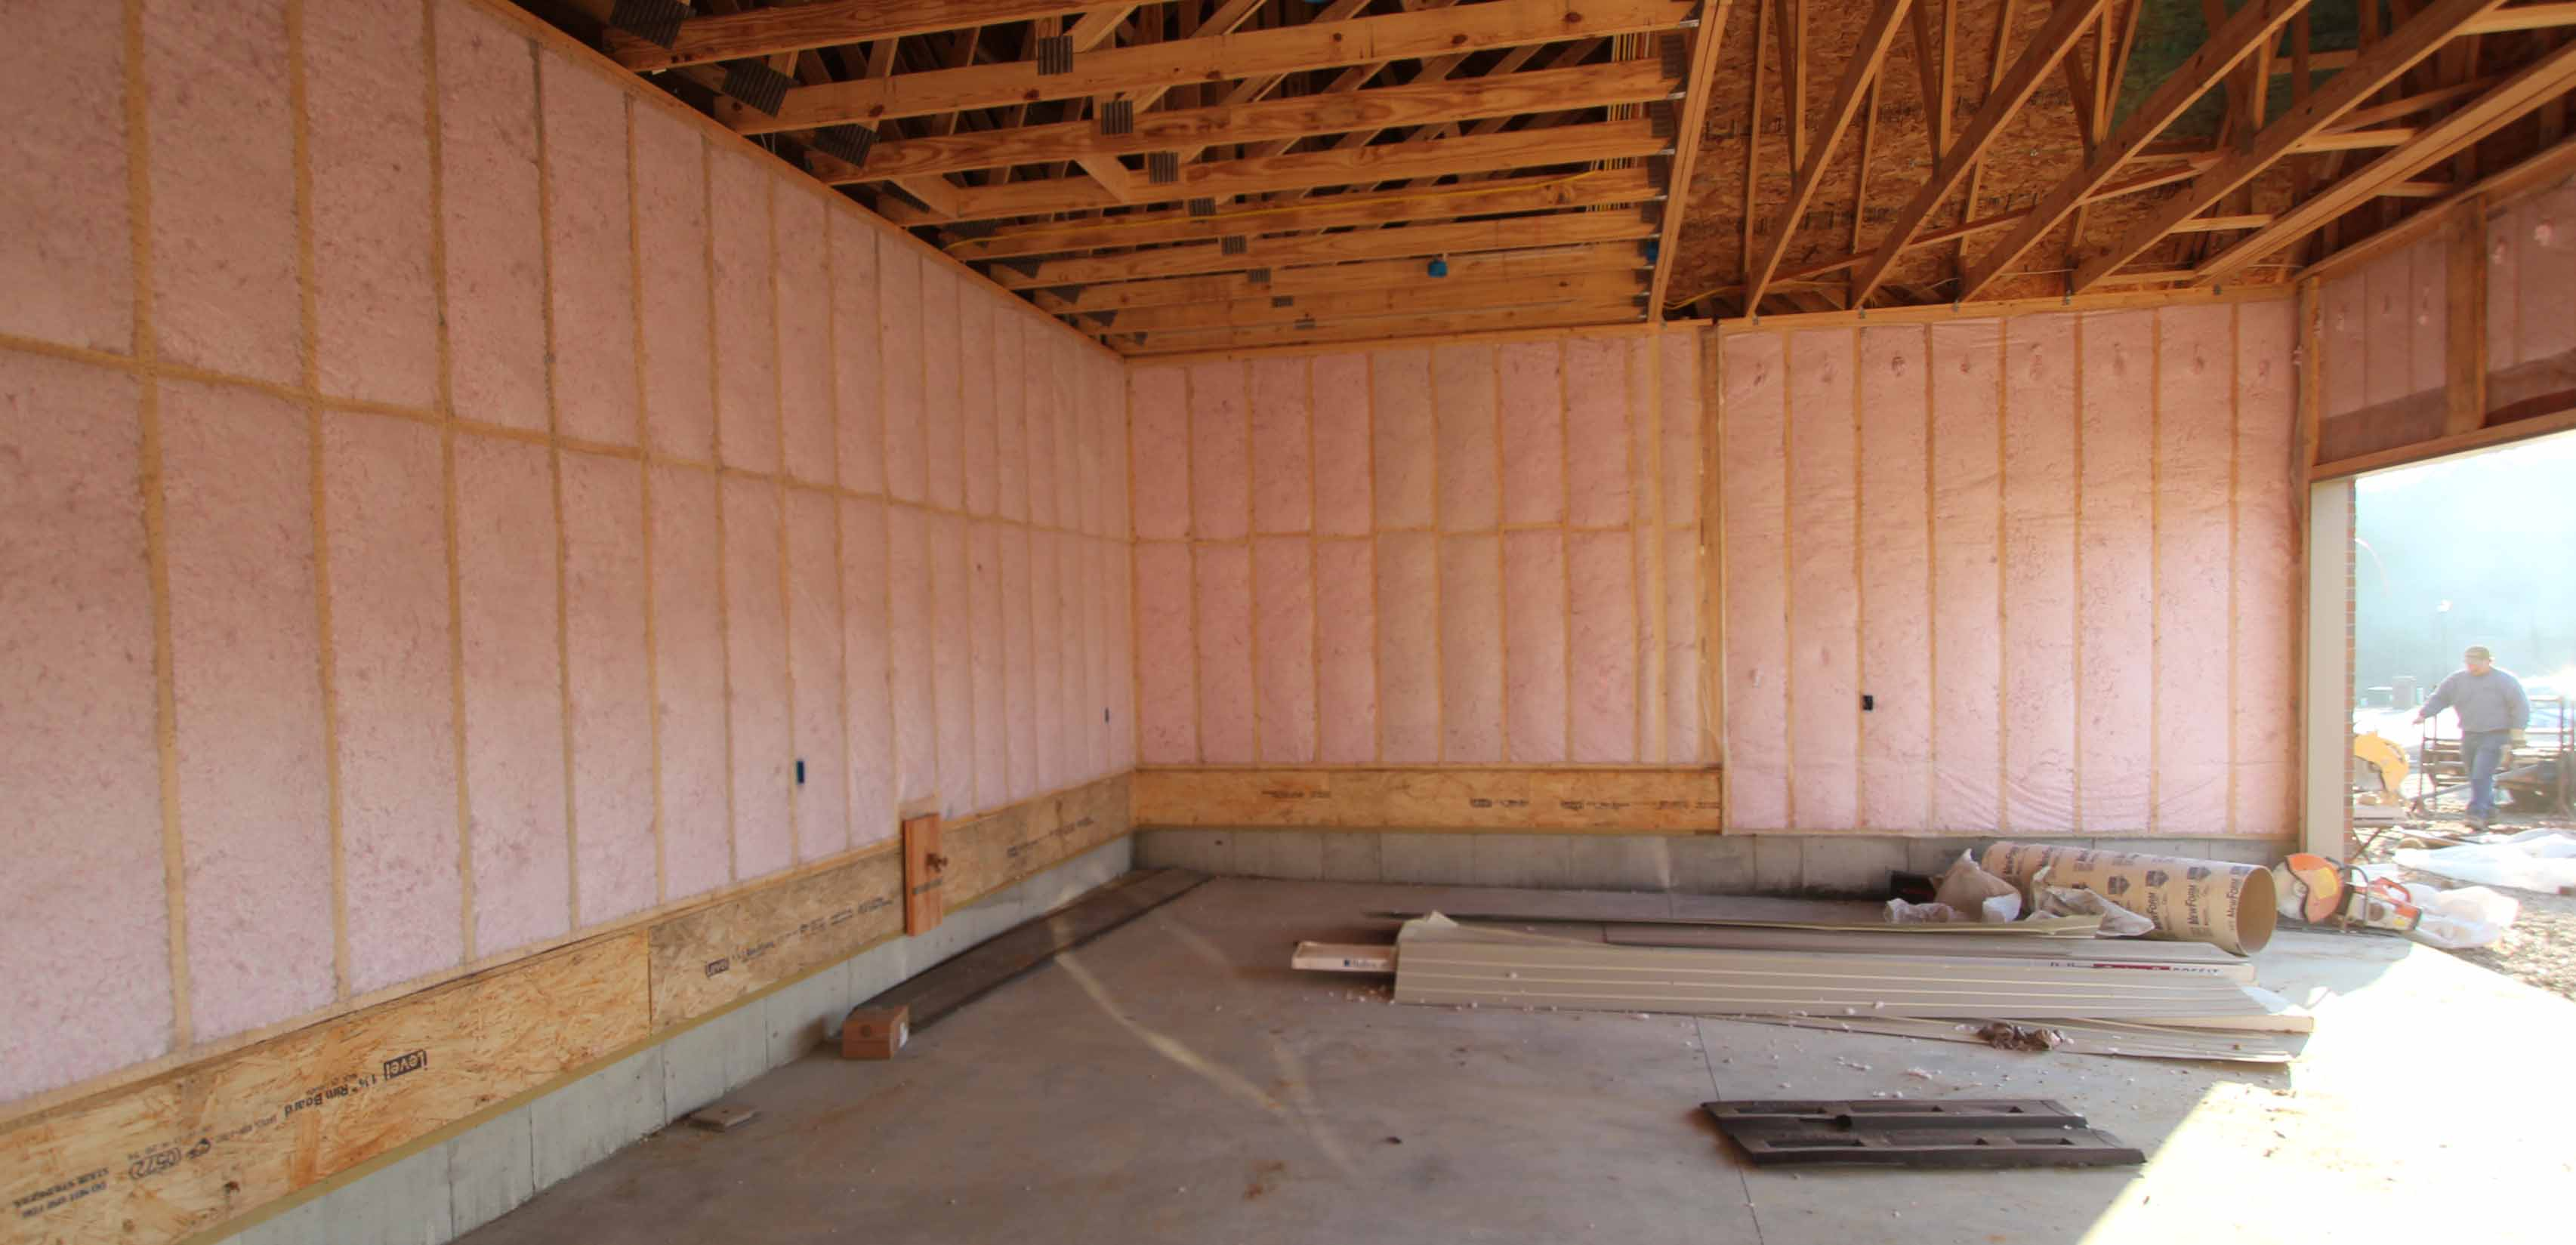 Related Keywords Suggestions For Insulating Garage Walls